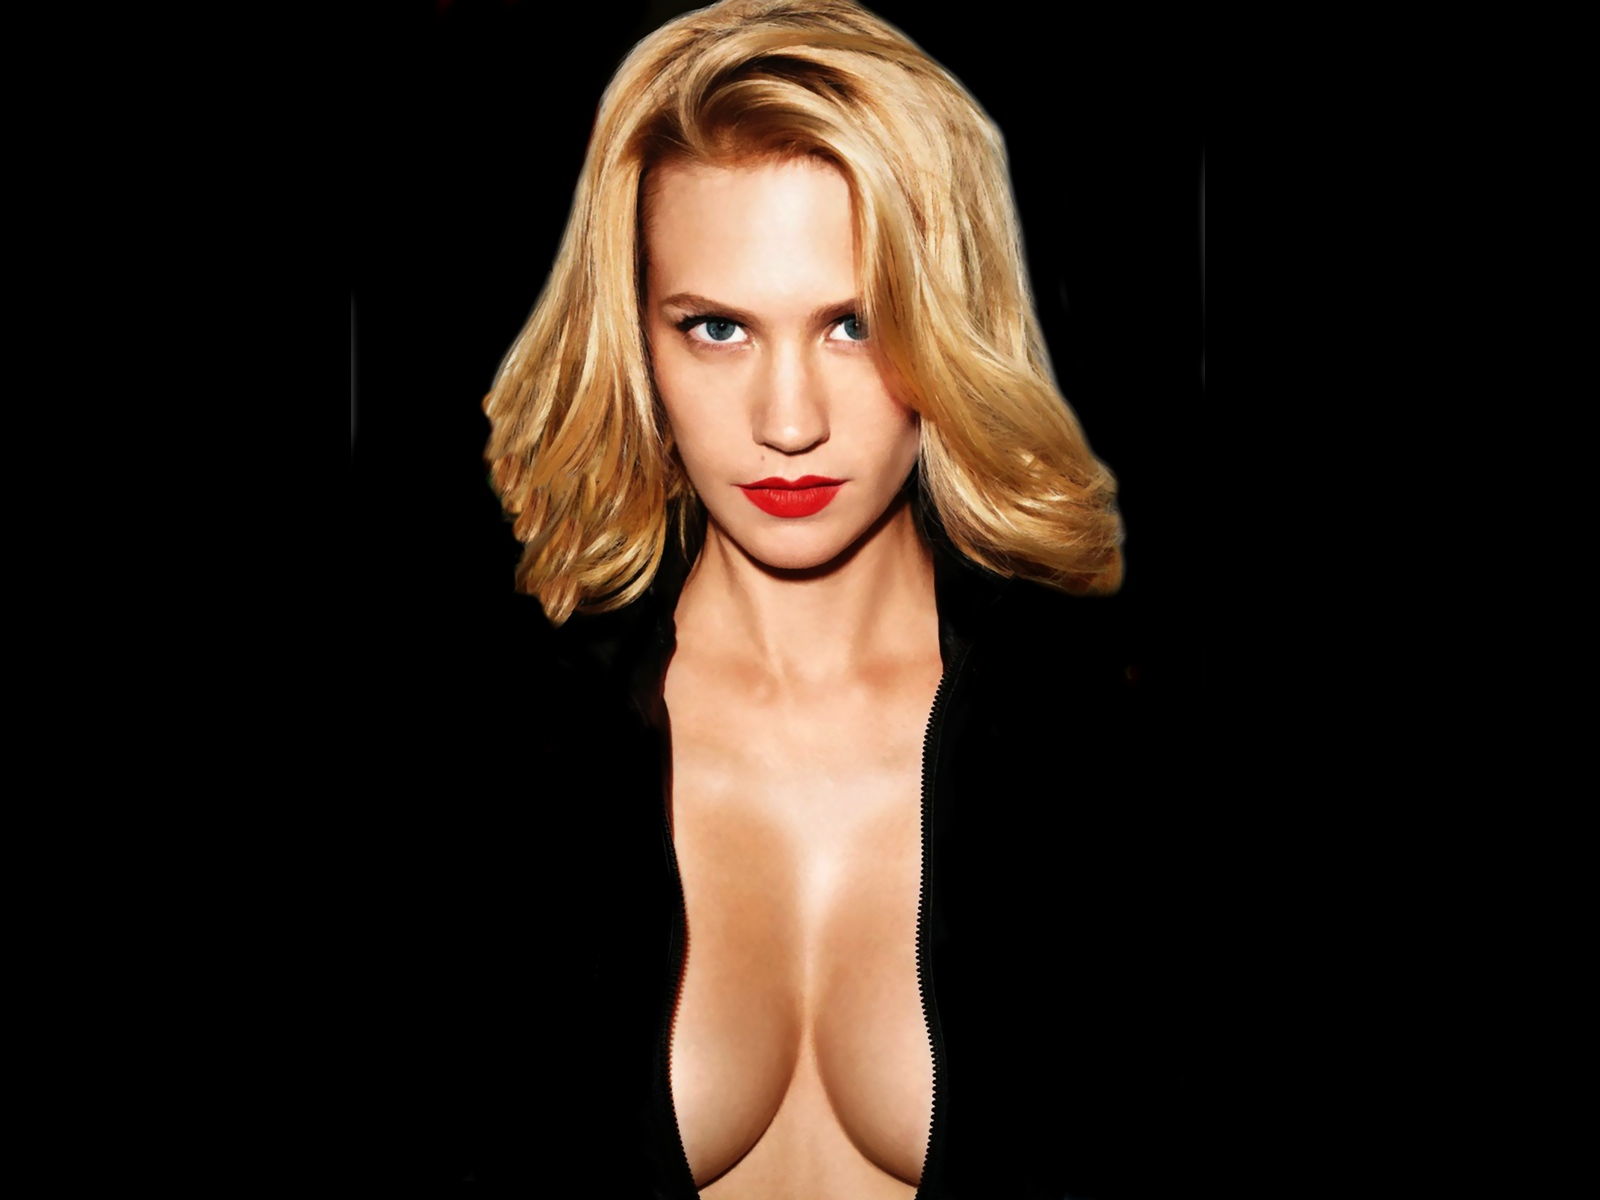 By DMZ | Published April 17, 2011 At 1600 × 1200 In January Jones 2 Wallpaper